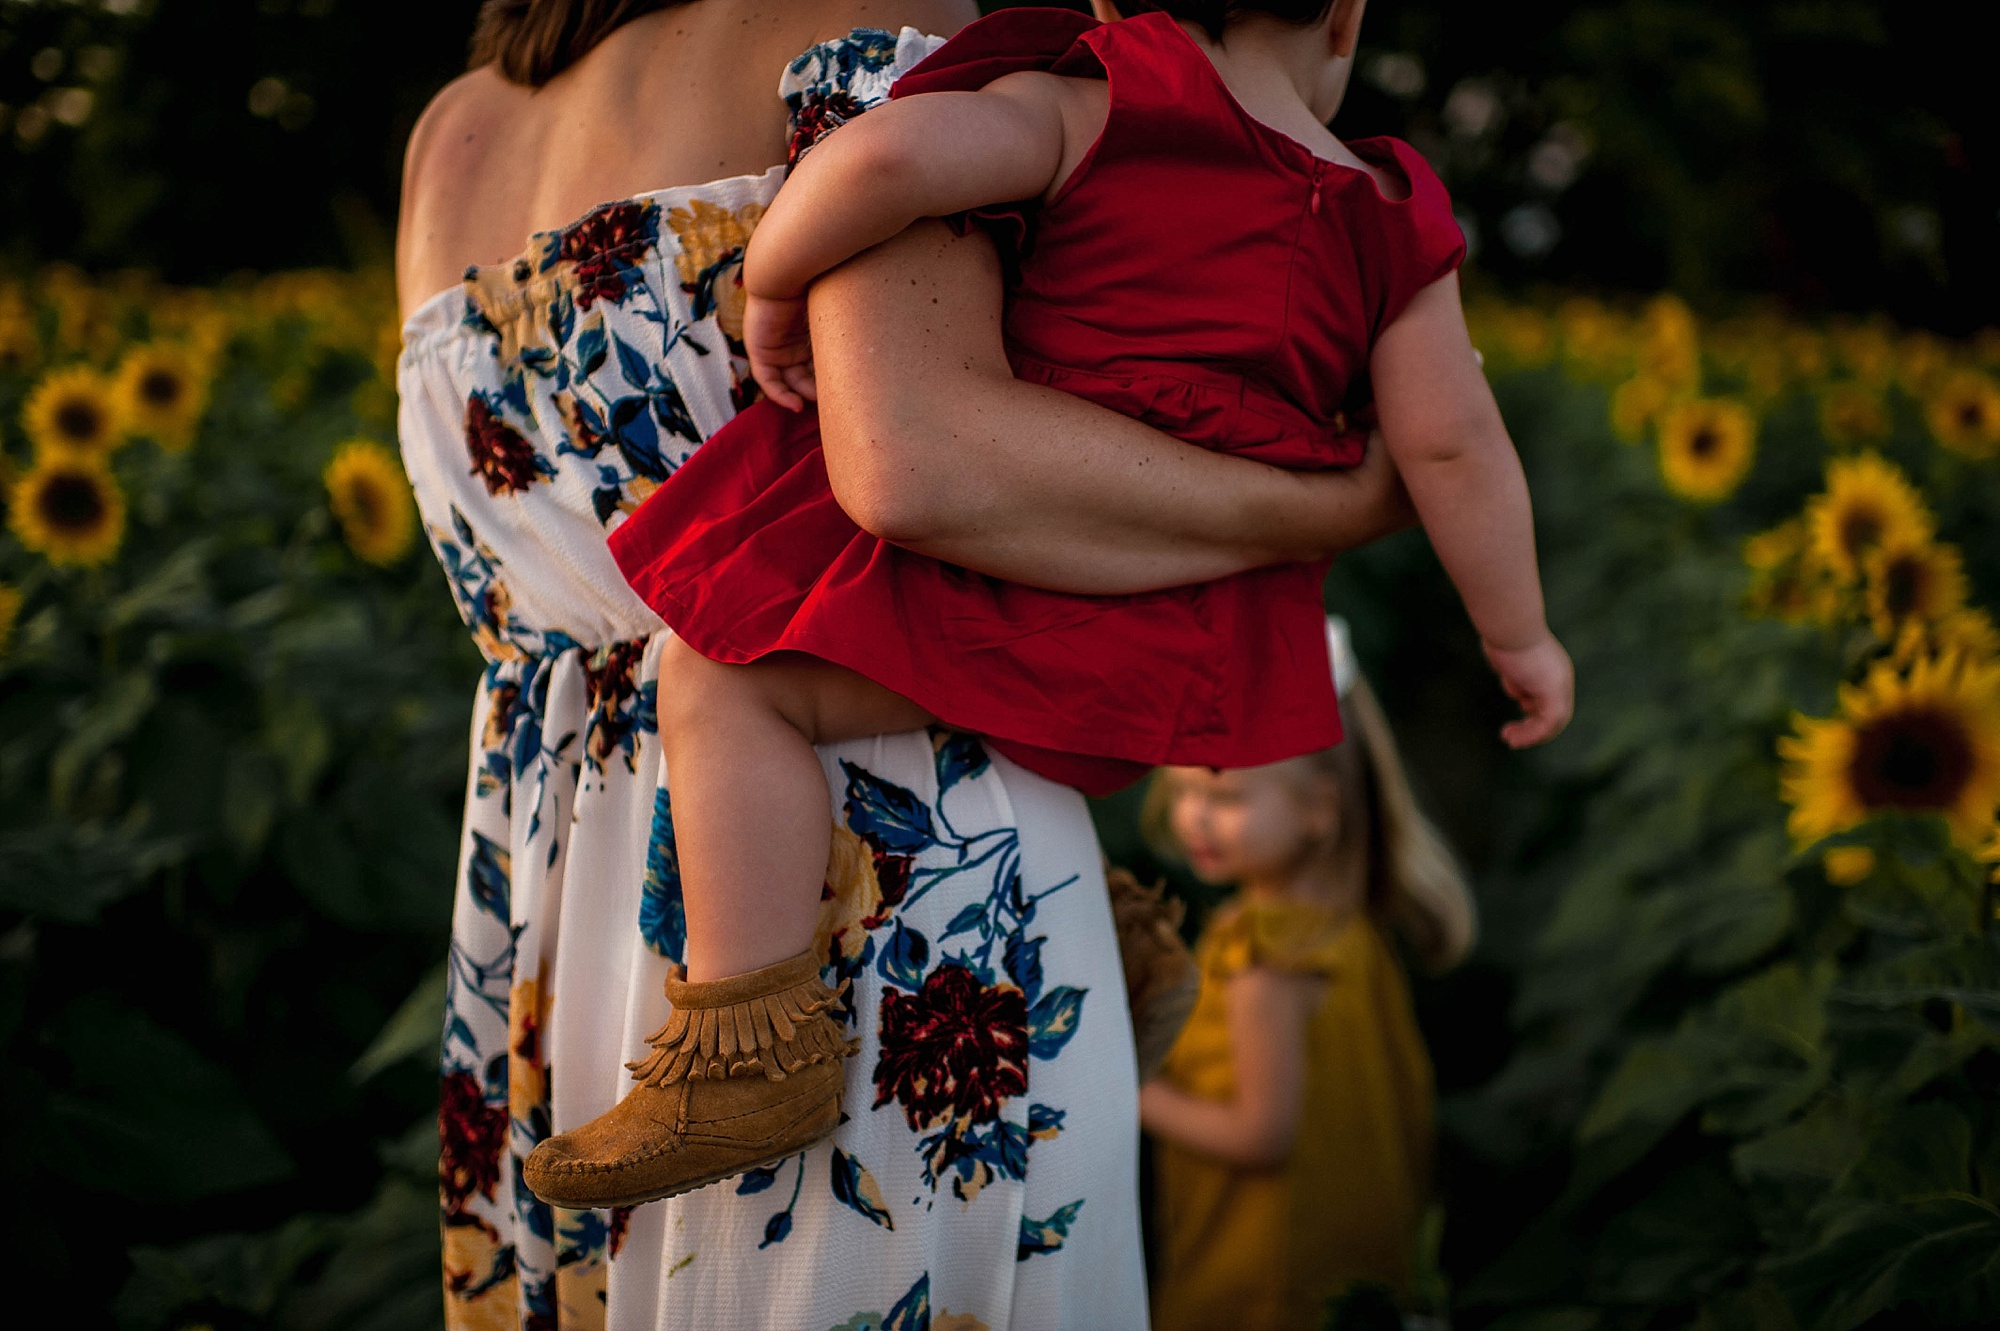 lauren-grayson-photography-cleveland-ohio-photographer-sunflower-fields-sunset-golden-hour-photo-shoot-mommy-and-me-family-child-photographer_0570.jpg